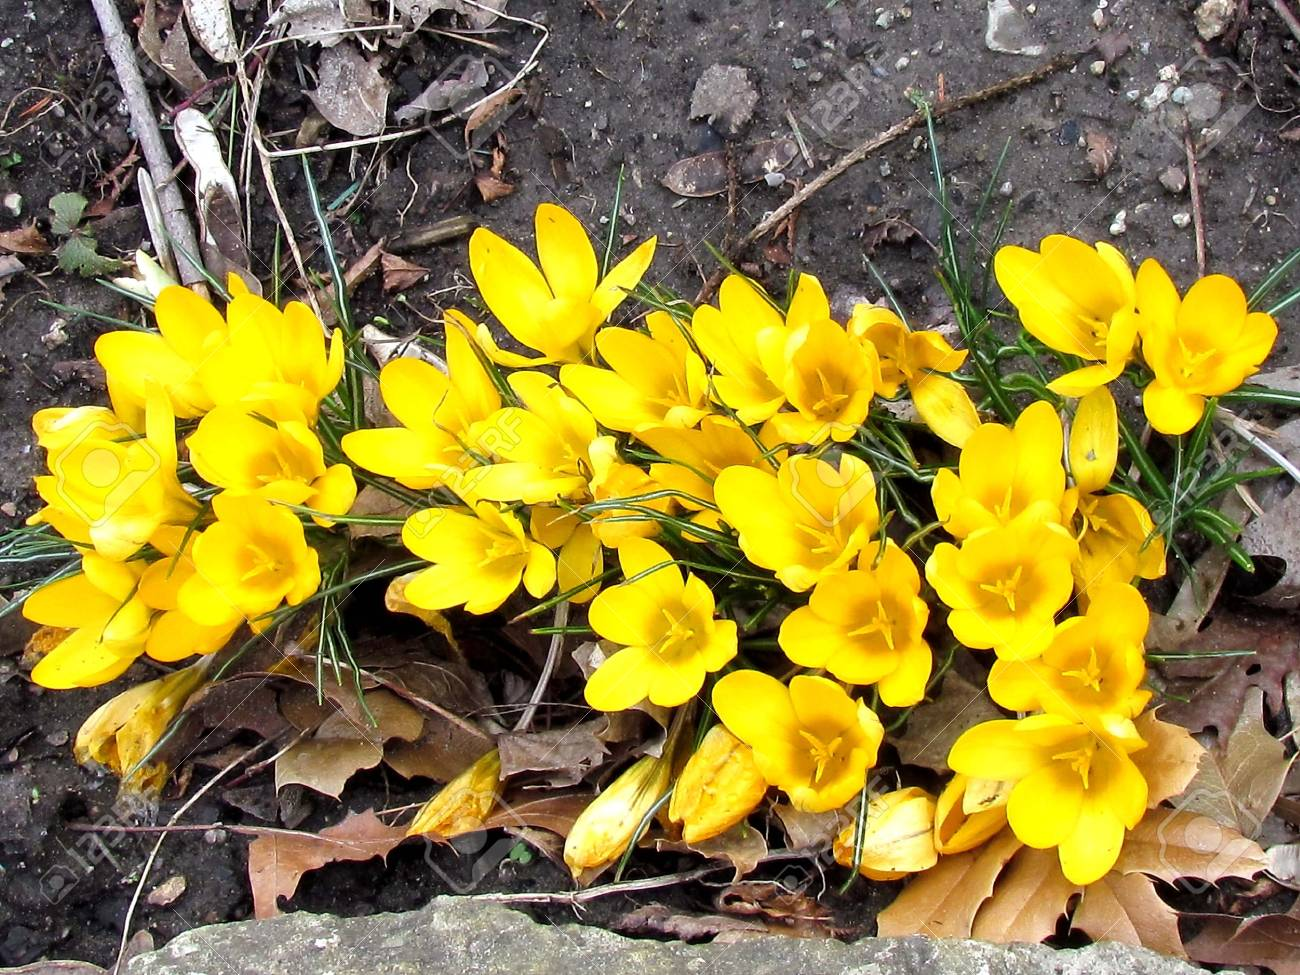 Yellow crocus flower in thornhill ontario canada stock photo stock photo yellow crocus flower in thornhill ontario canada mightylinksfo